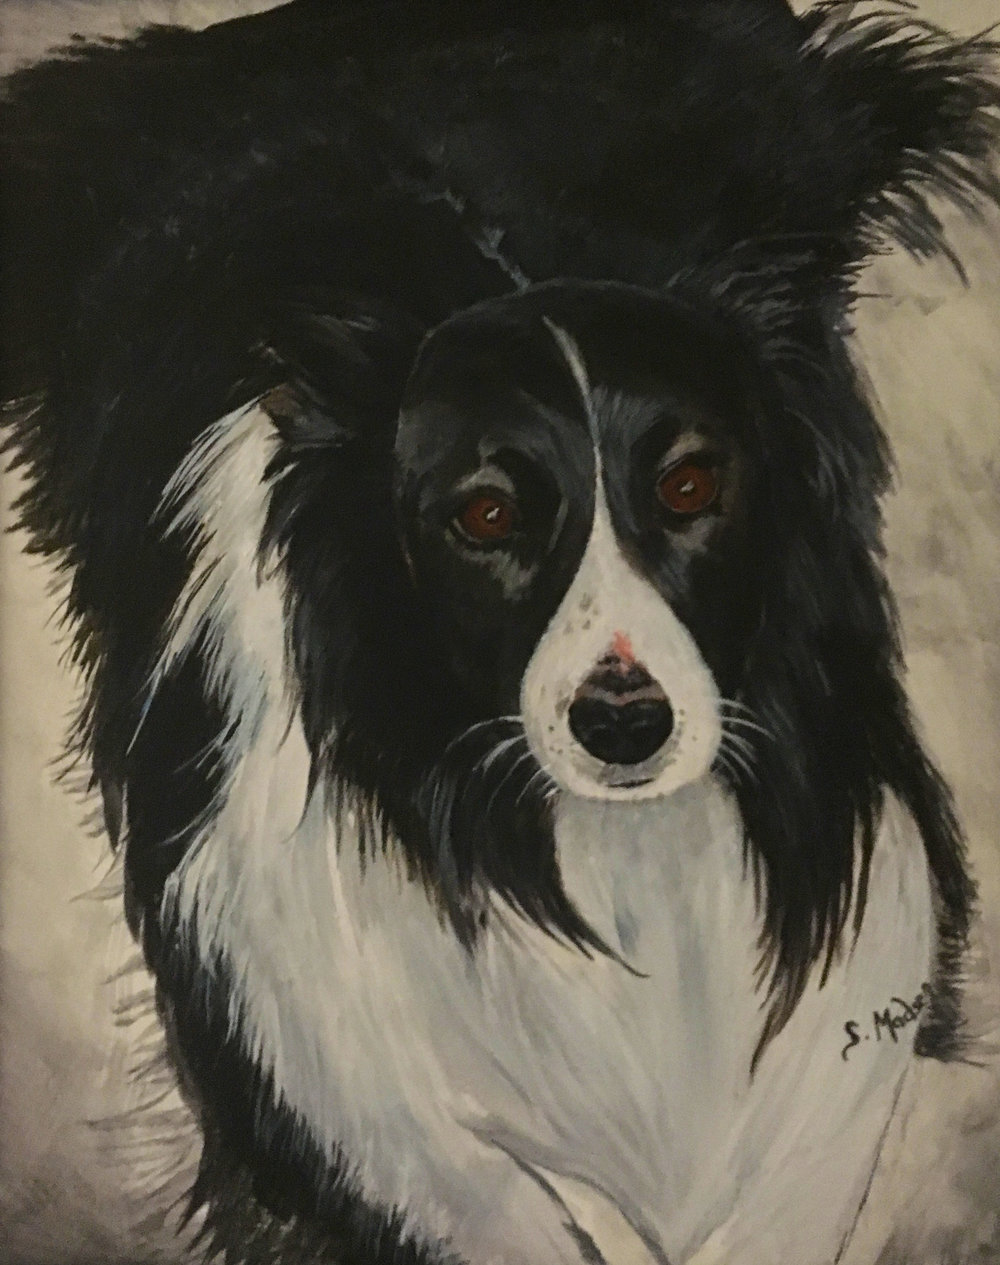 loyal friend - private collection